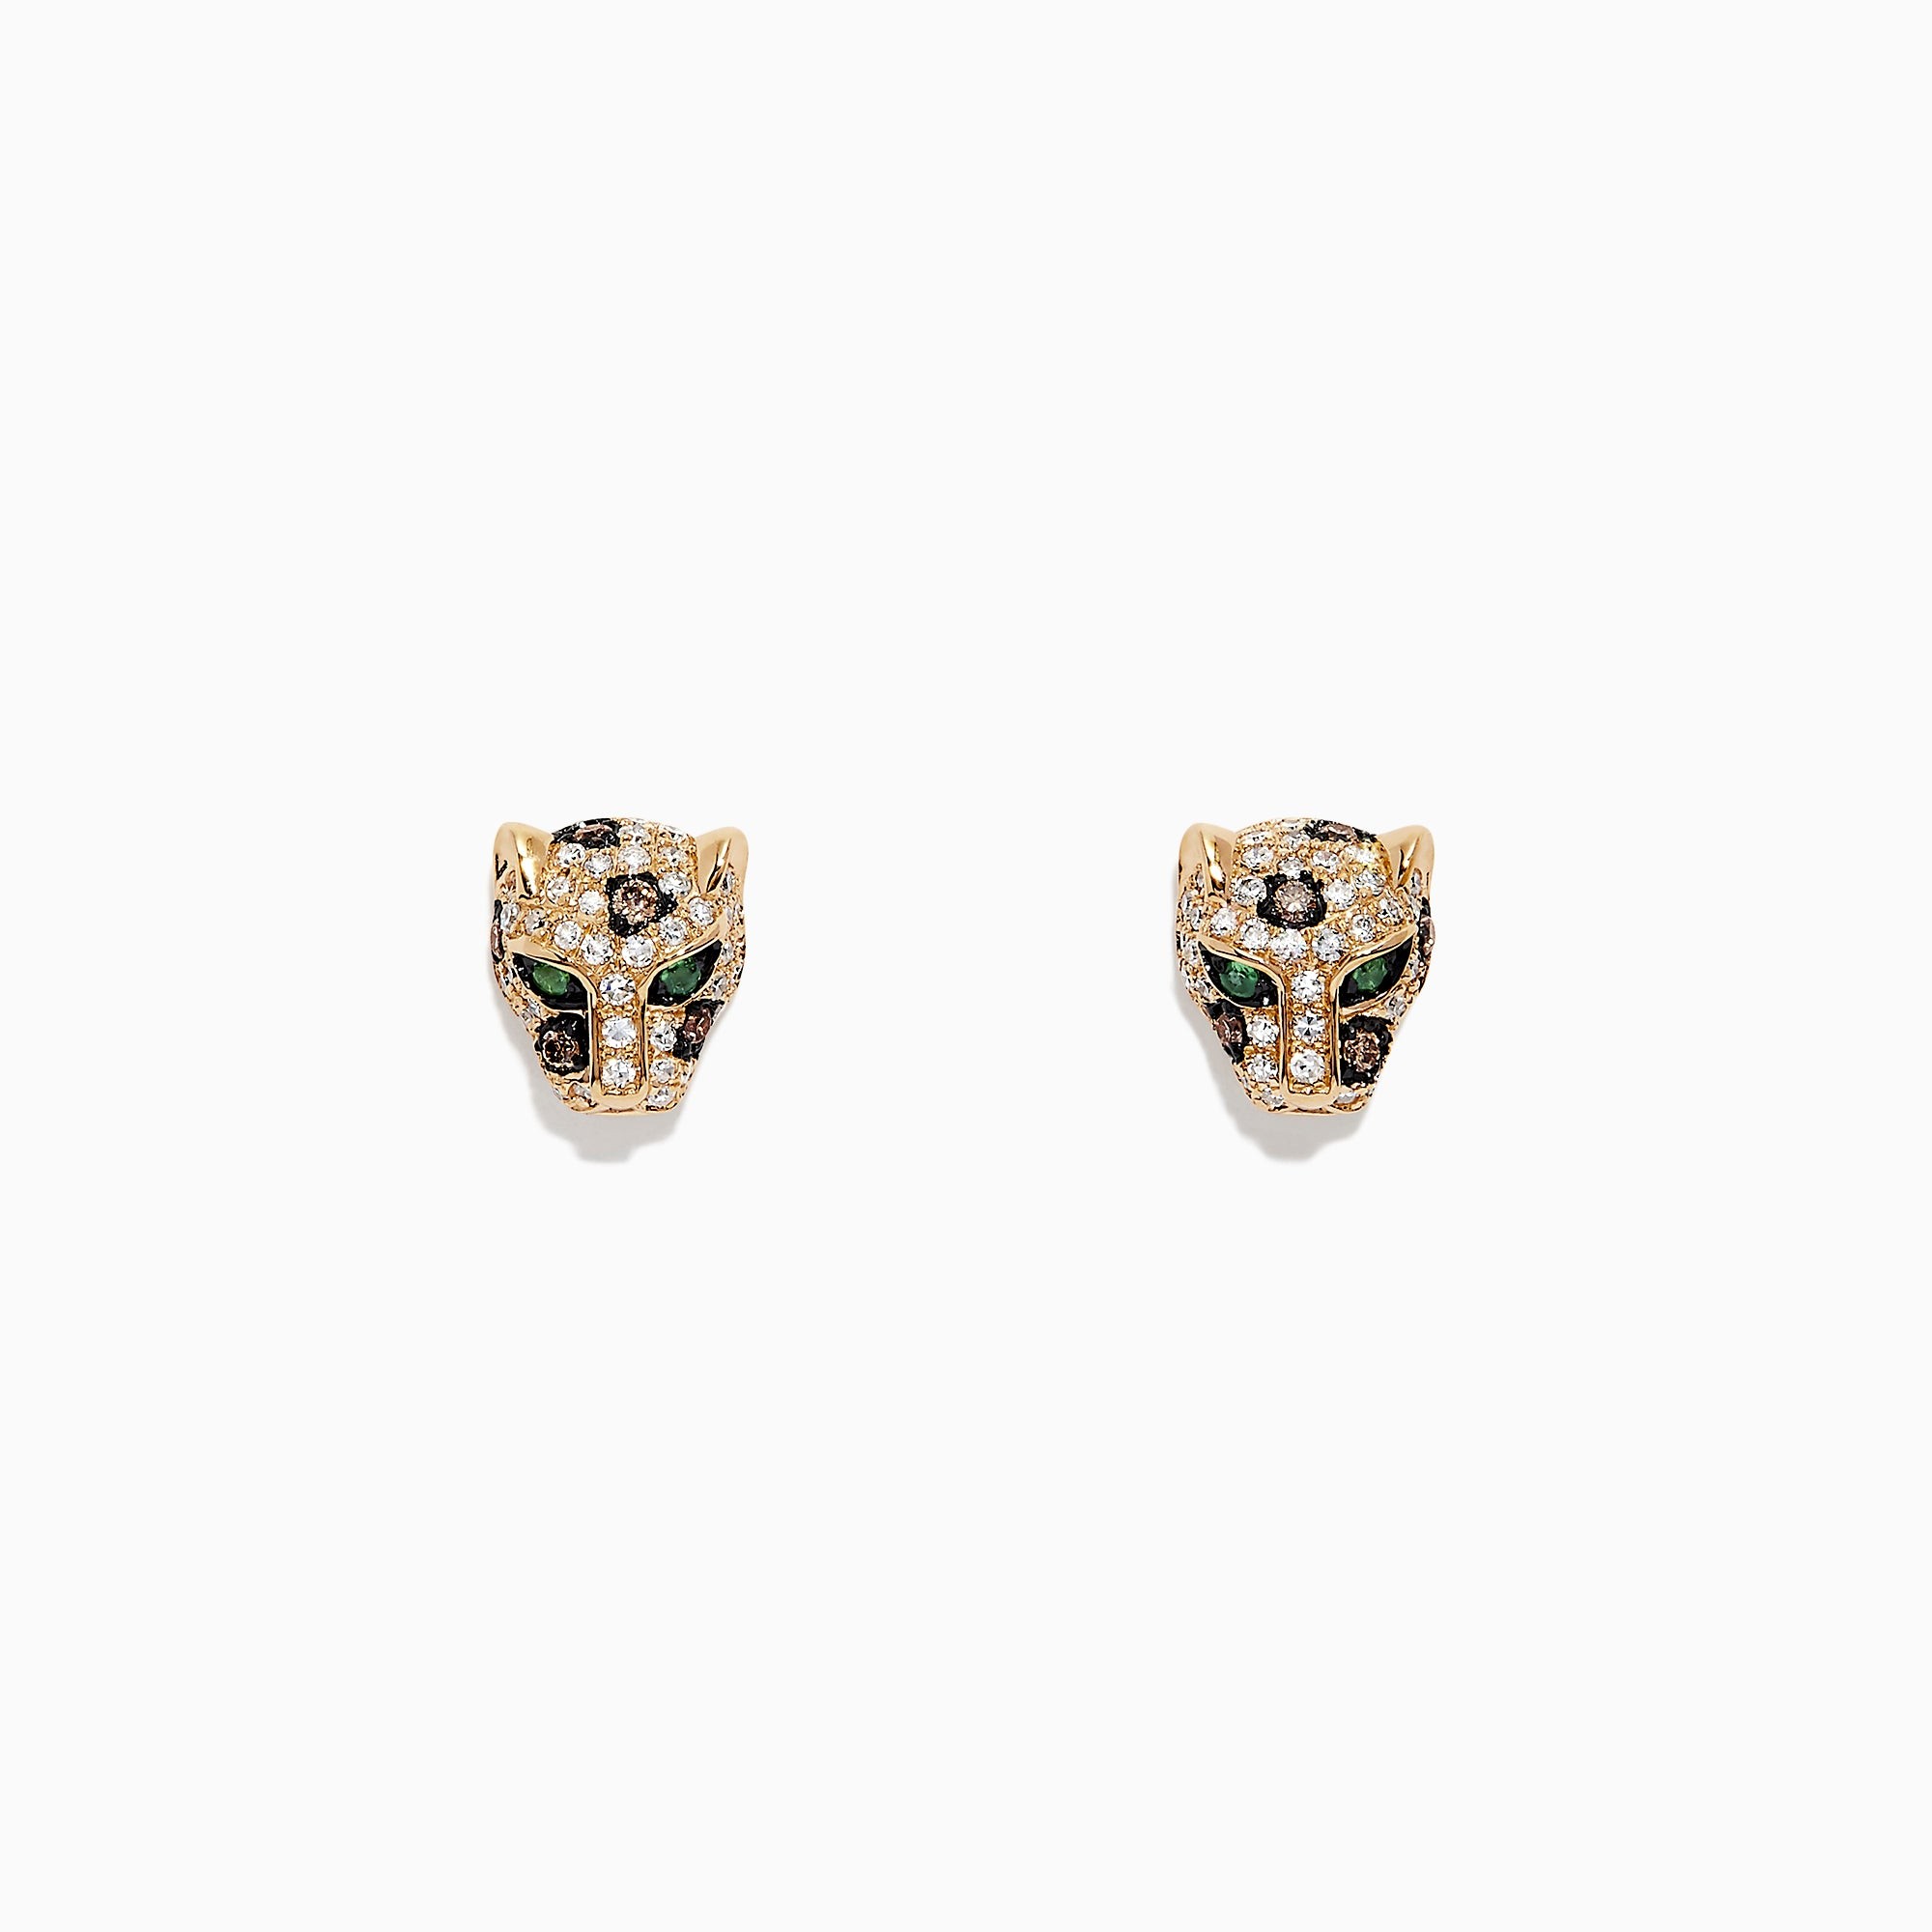 Effy Signature 14K Yellow Gold Diamond Panther Stud Earrings, 0.37 TCW